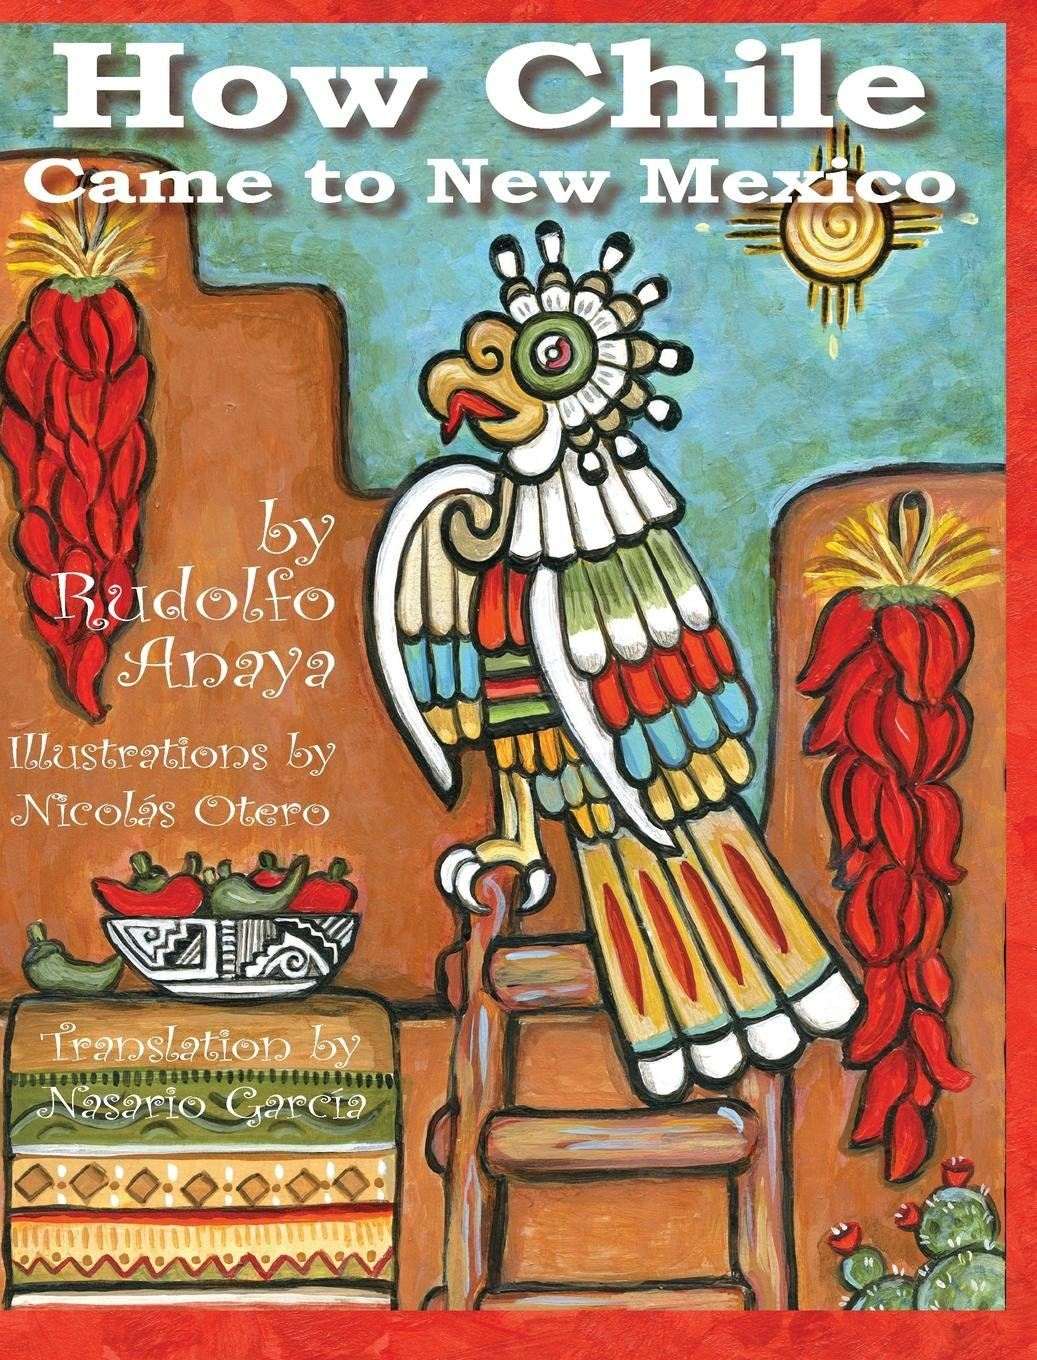 How Chile Came to New Mexico by Rudolfo Anaya